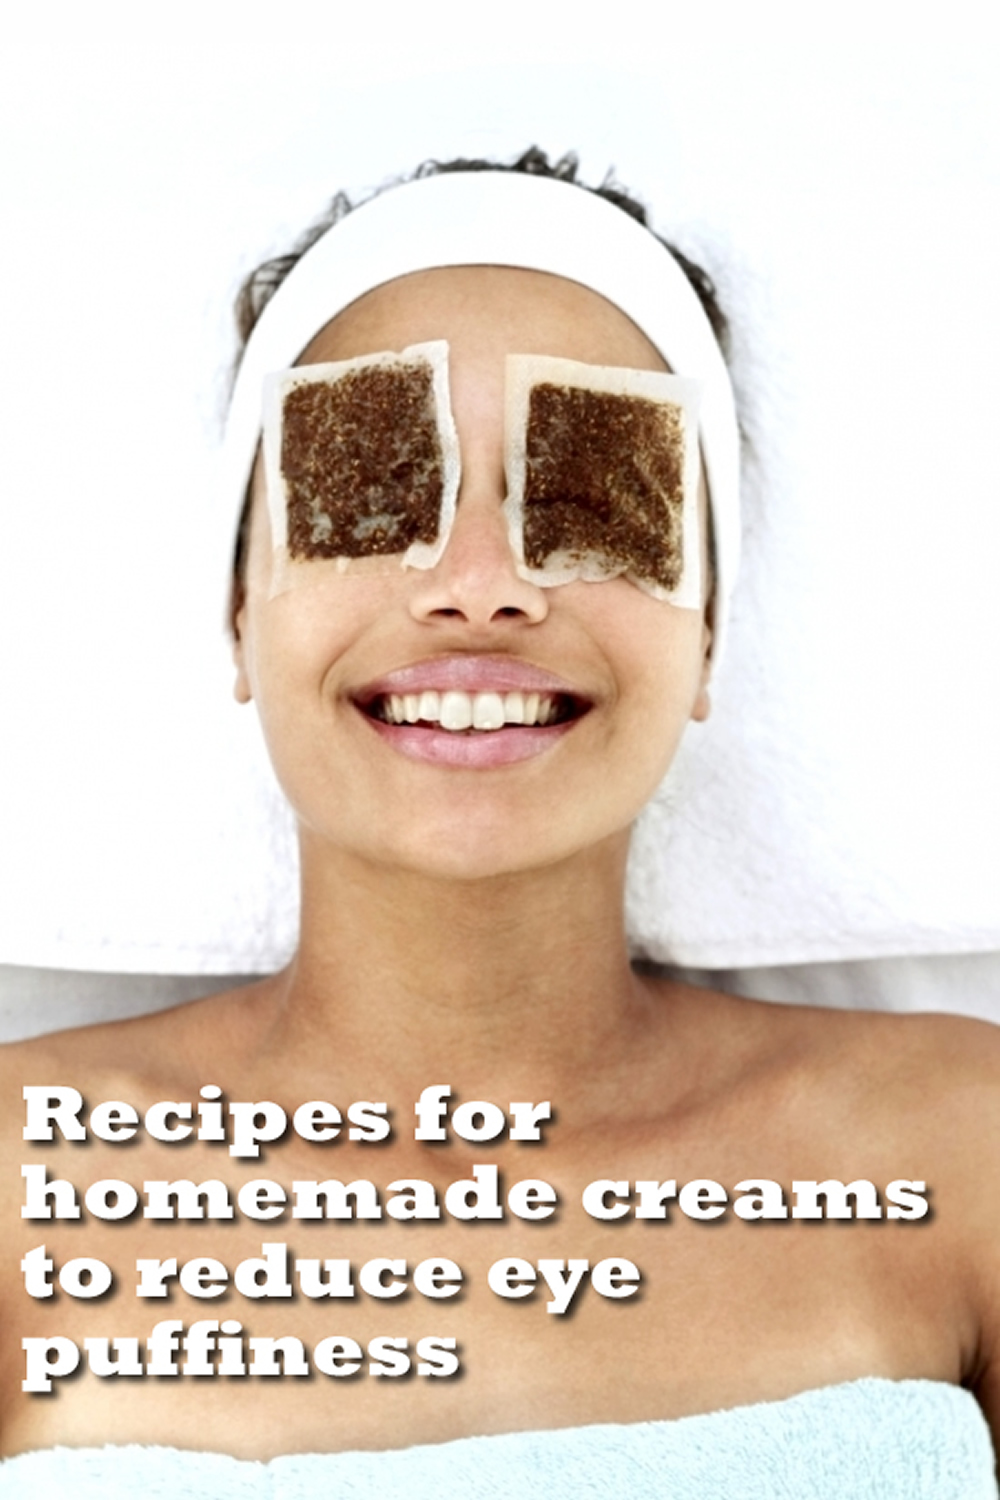 Recipes for homemade creams to reduce eye puffiness